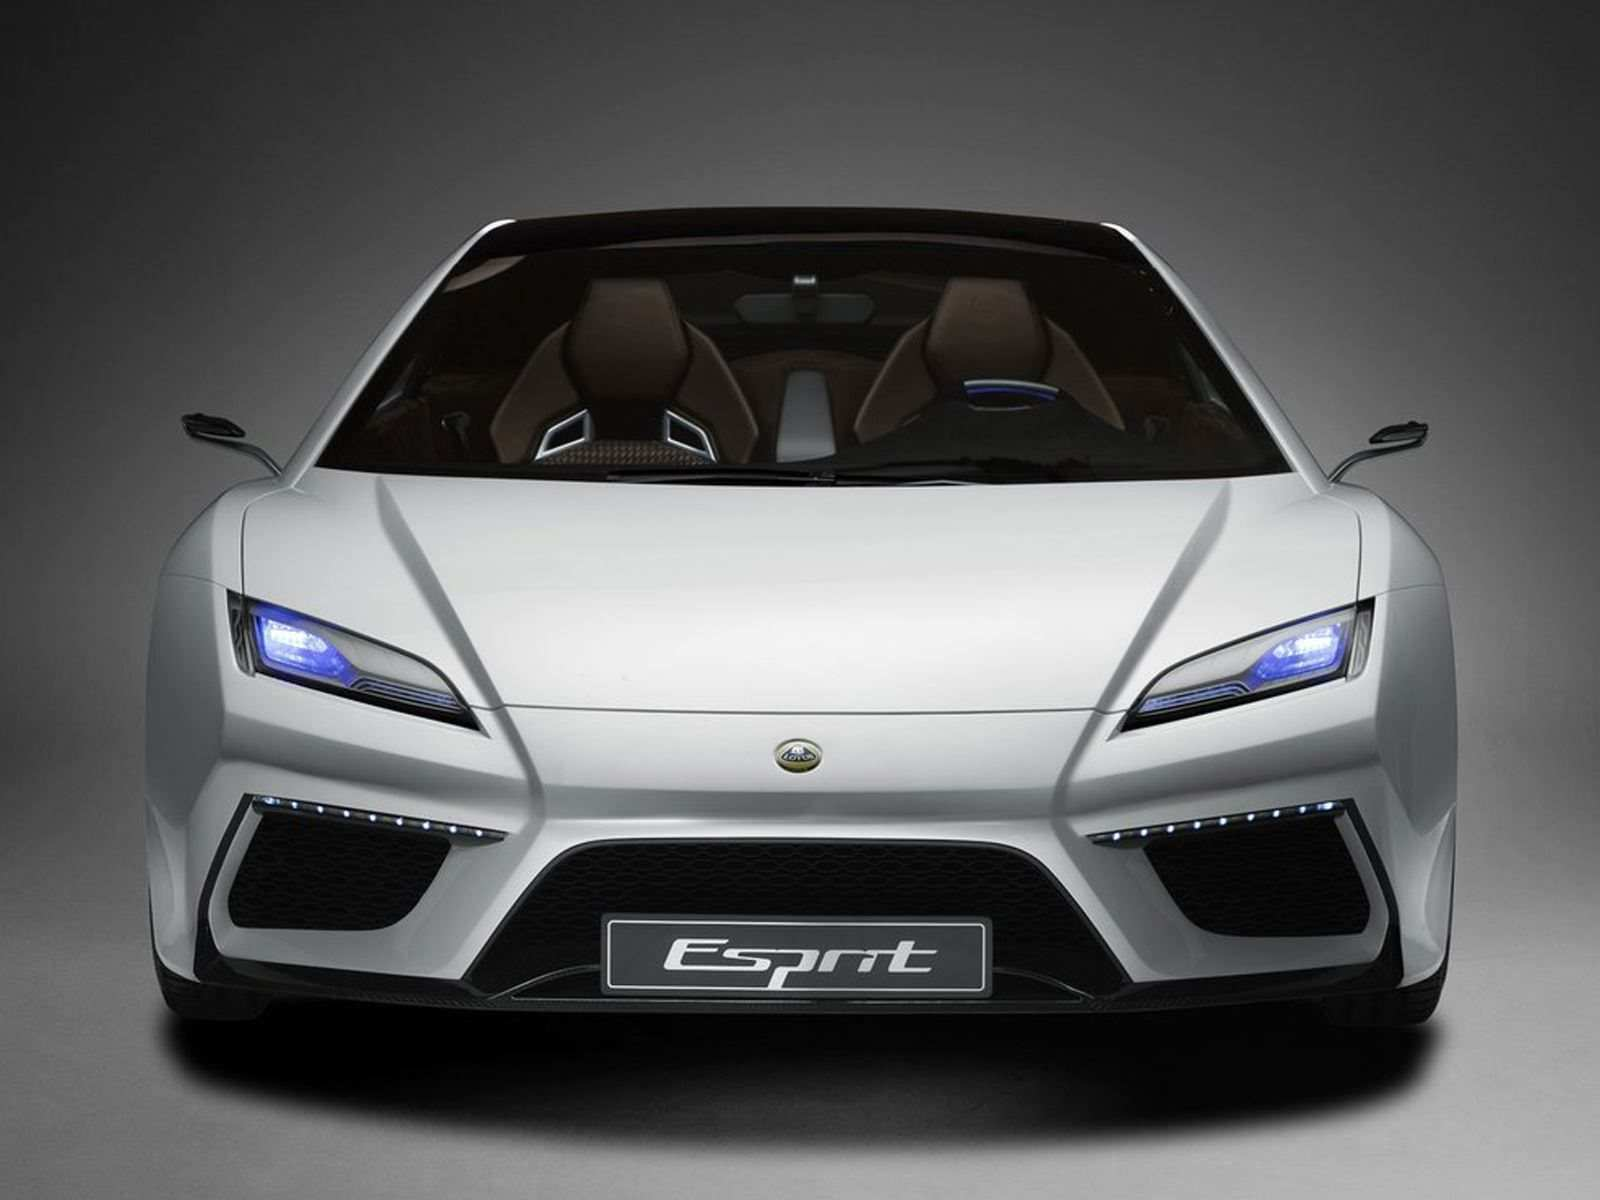 15 The 2020 Lotus Esprit Model